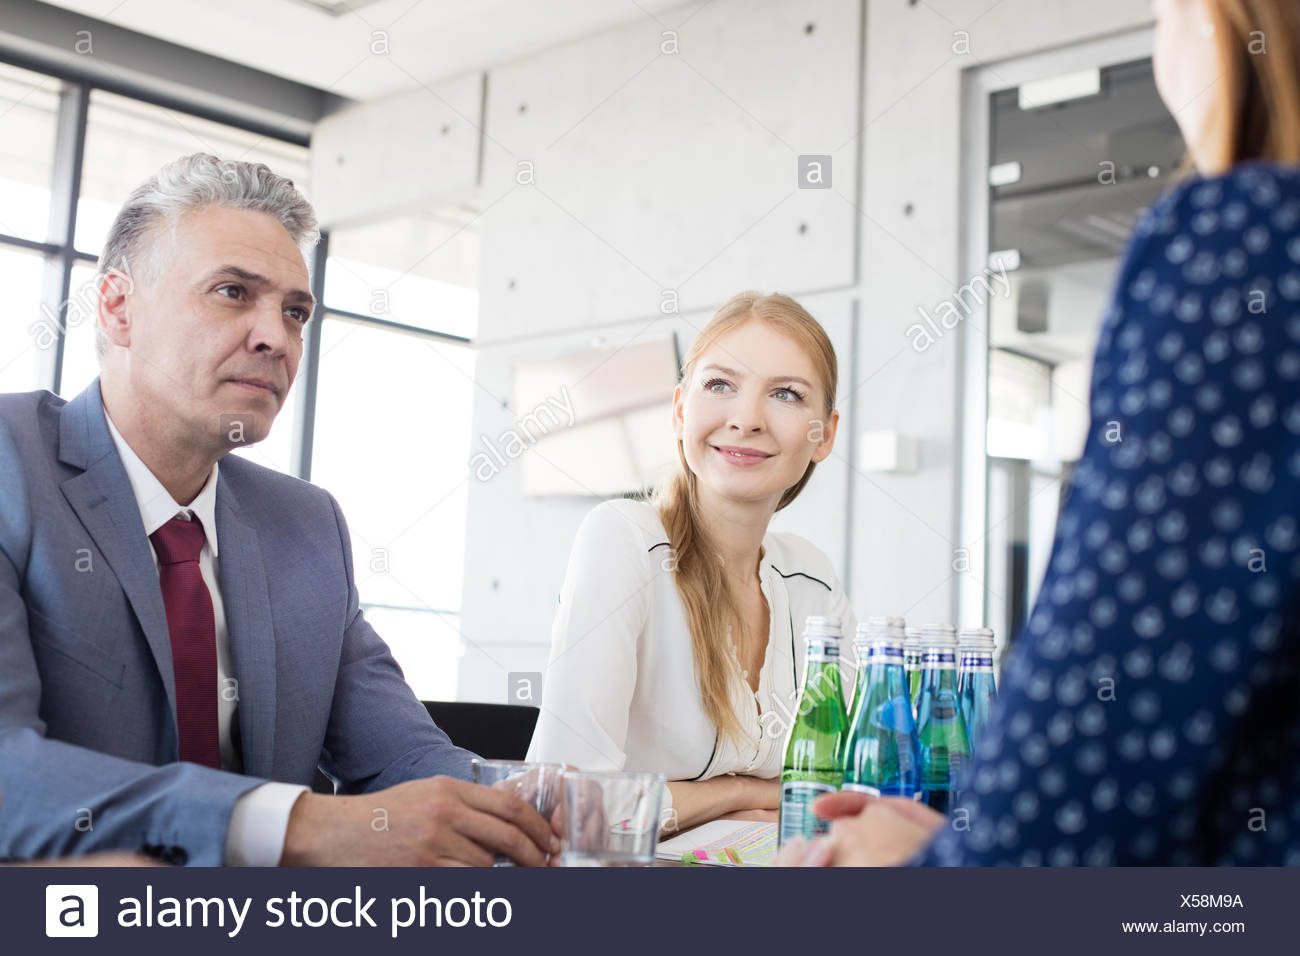 Smiling young businesswoman with colleagues in board room - Stock Image